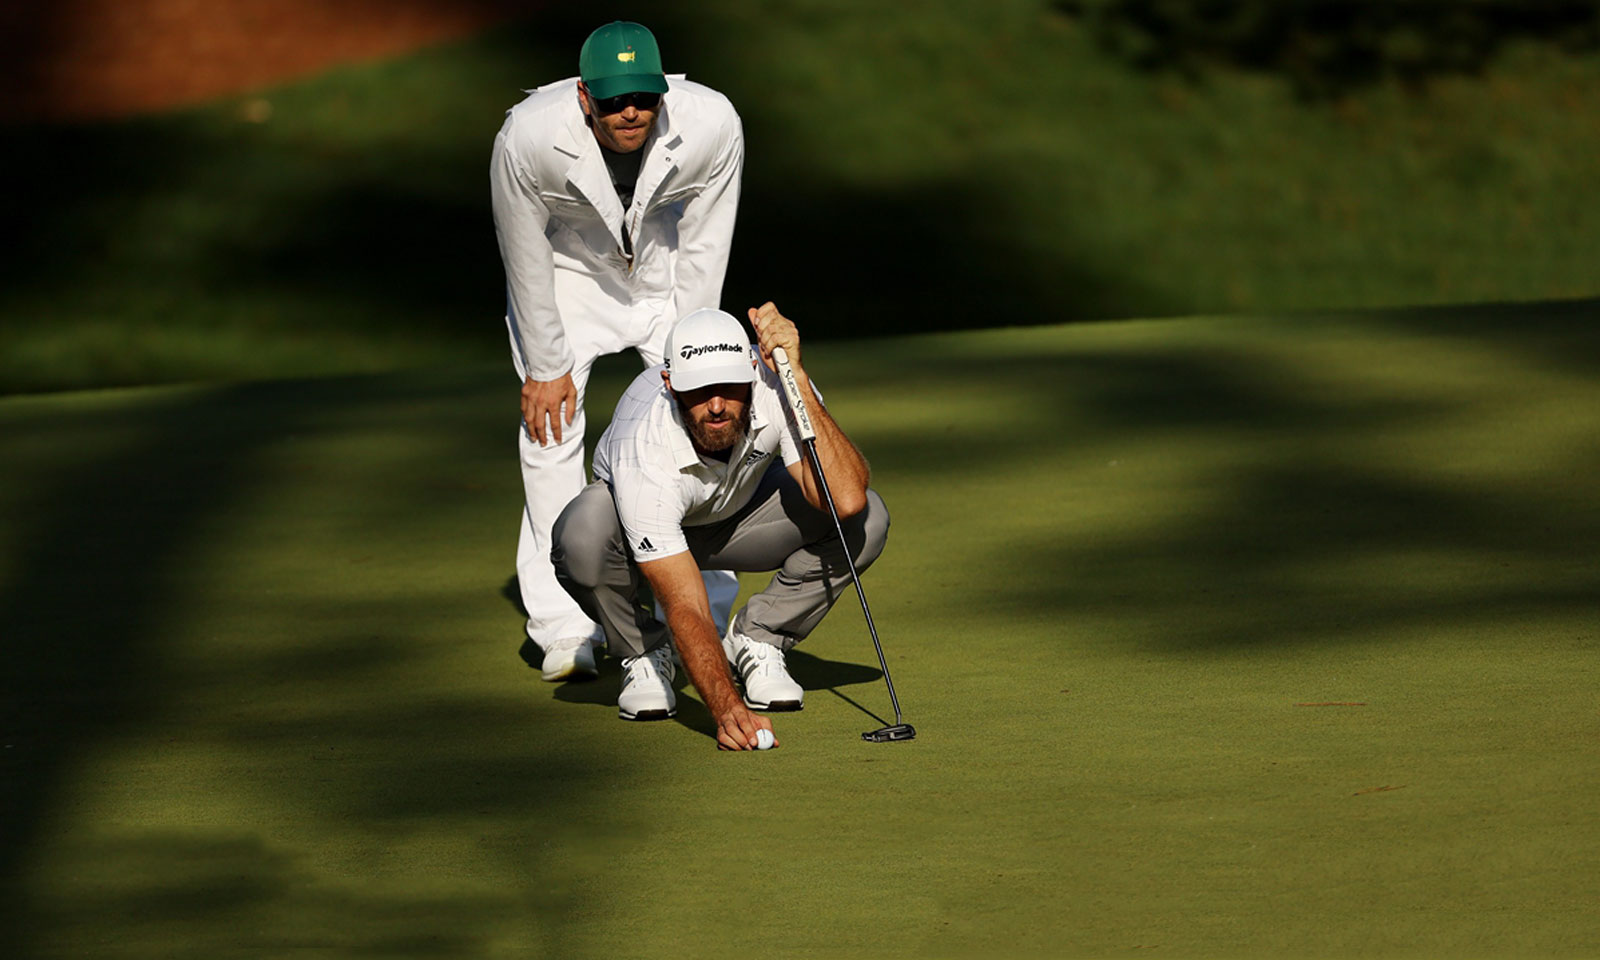 DJ-Dustin Johnson and his caddy Austin Johnson